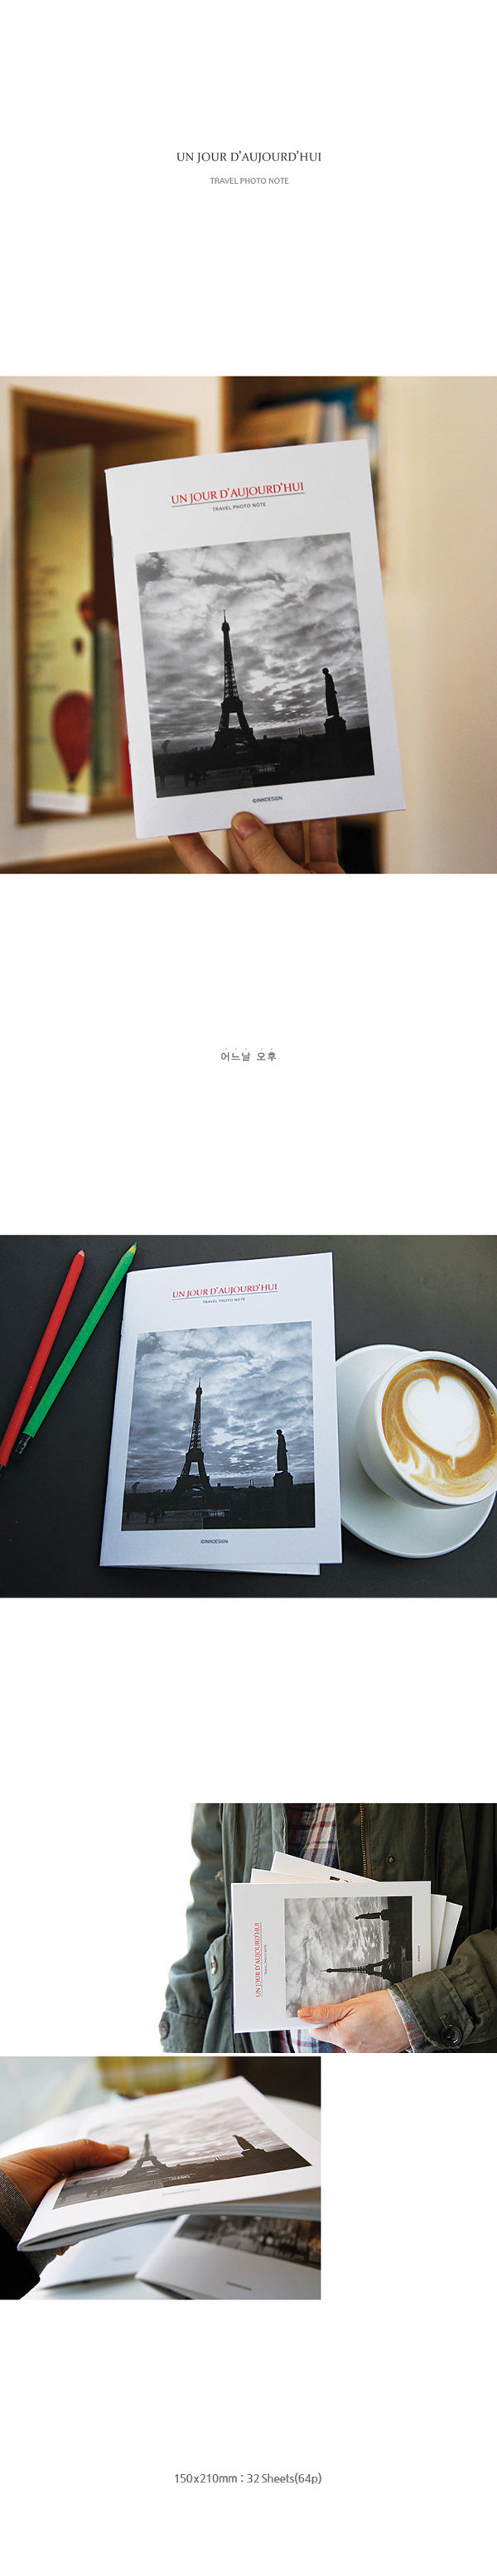 Korean Stationery | Champs-Elysées Travel Journal Notebook (European Paris Travel Trip)